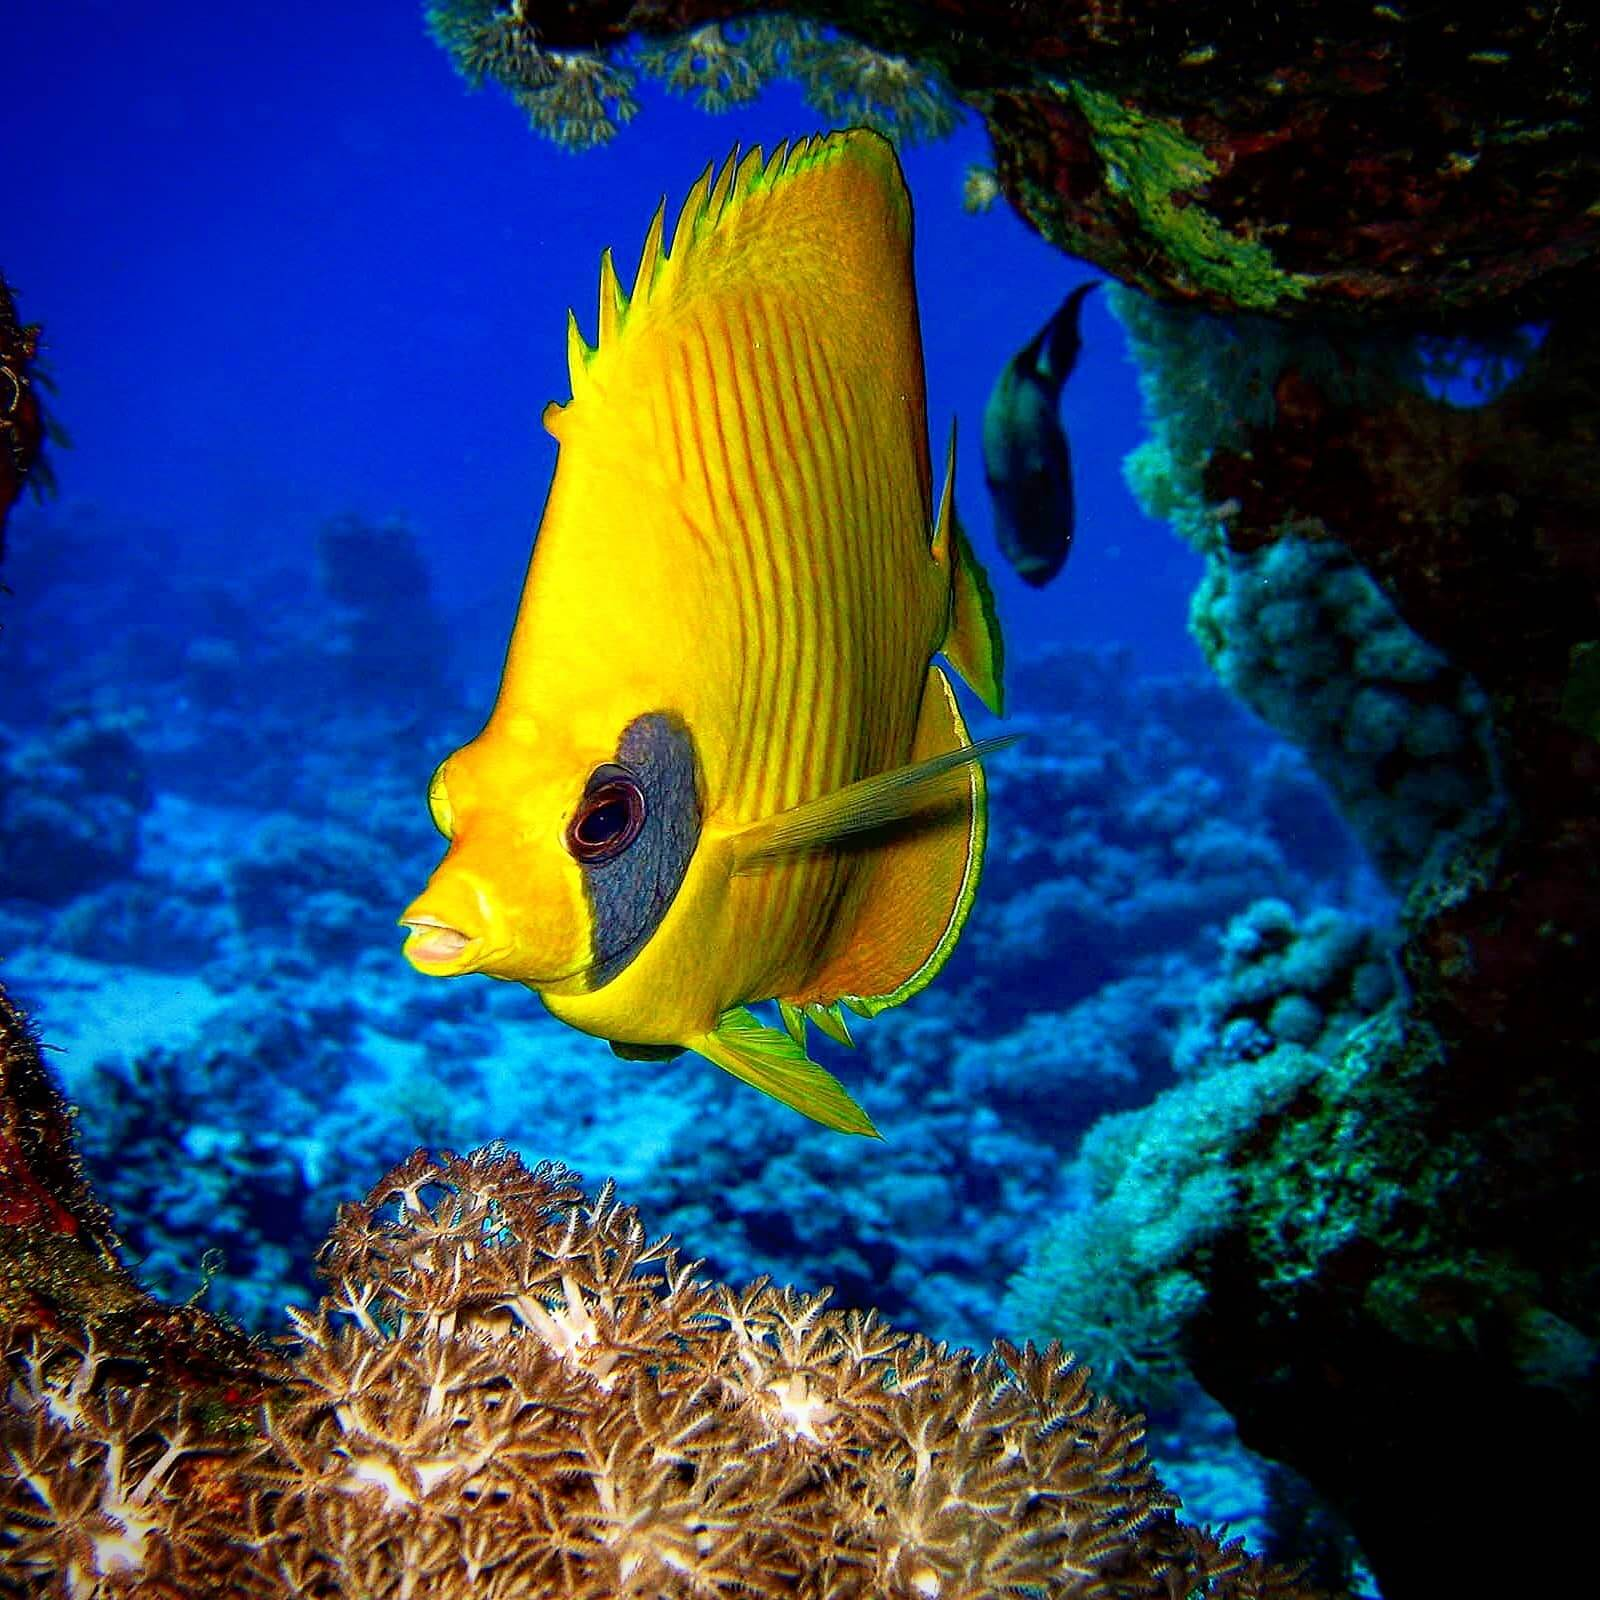 Egypt-REDSEA-Hurghada-DivePro-Academy-Scuba-Diving-Center-Butter-Fly-Fish